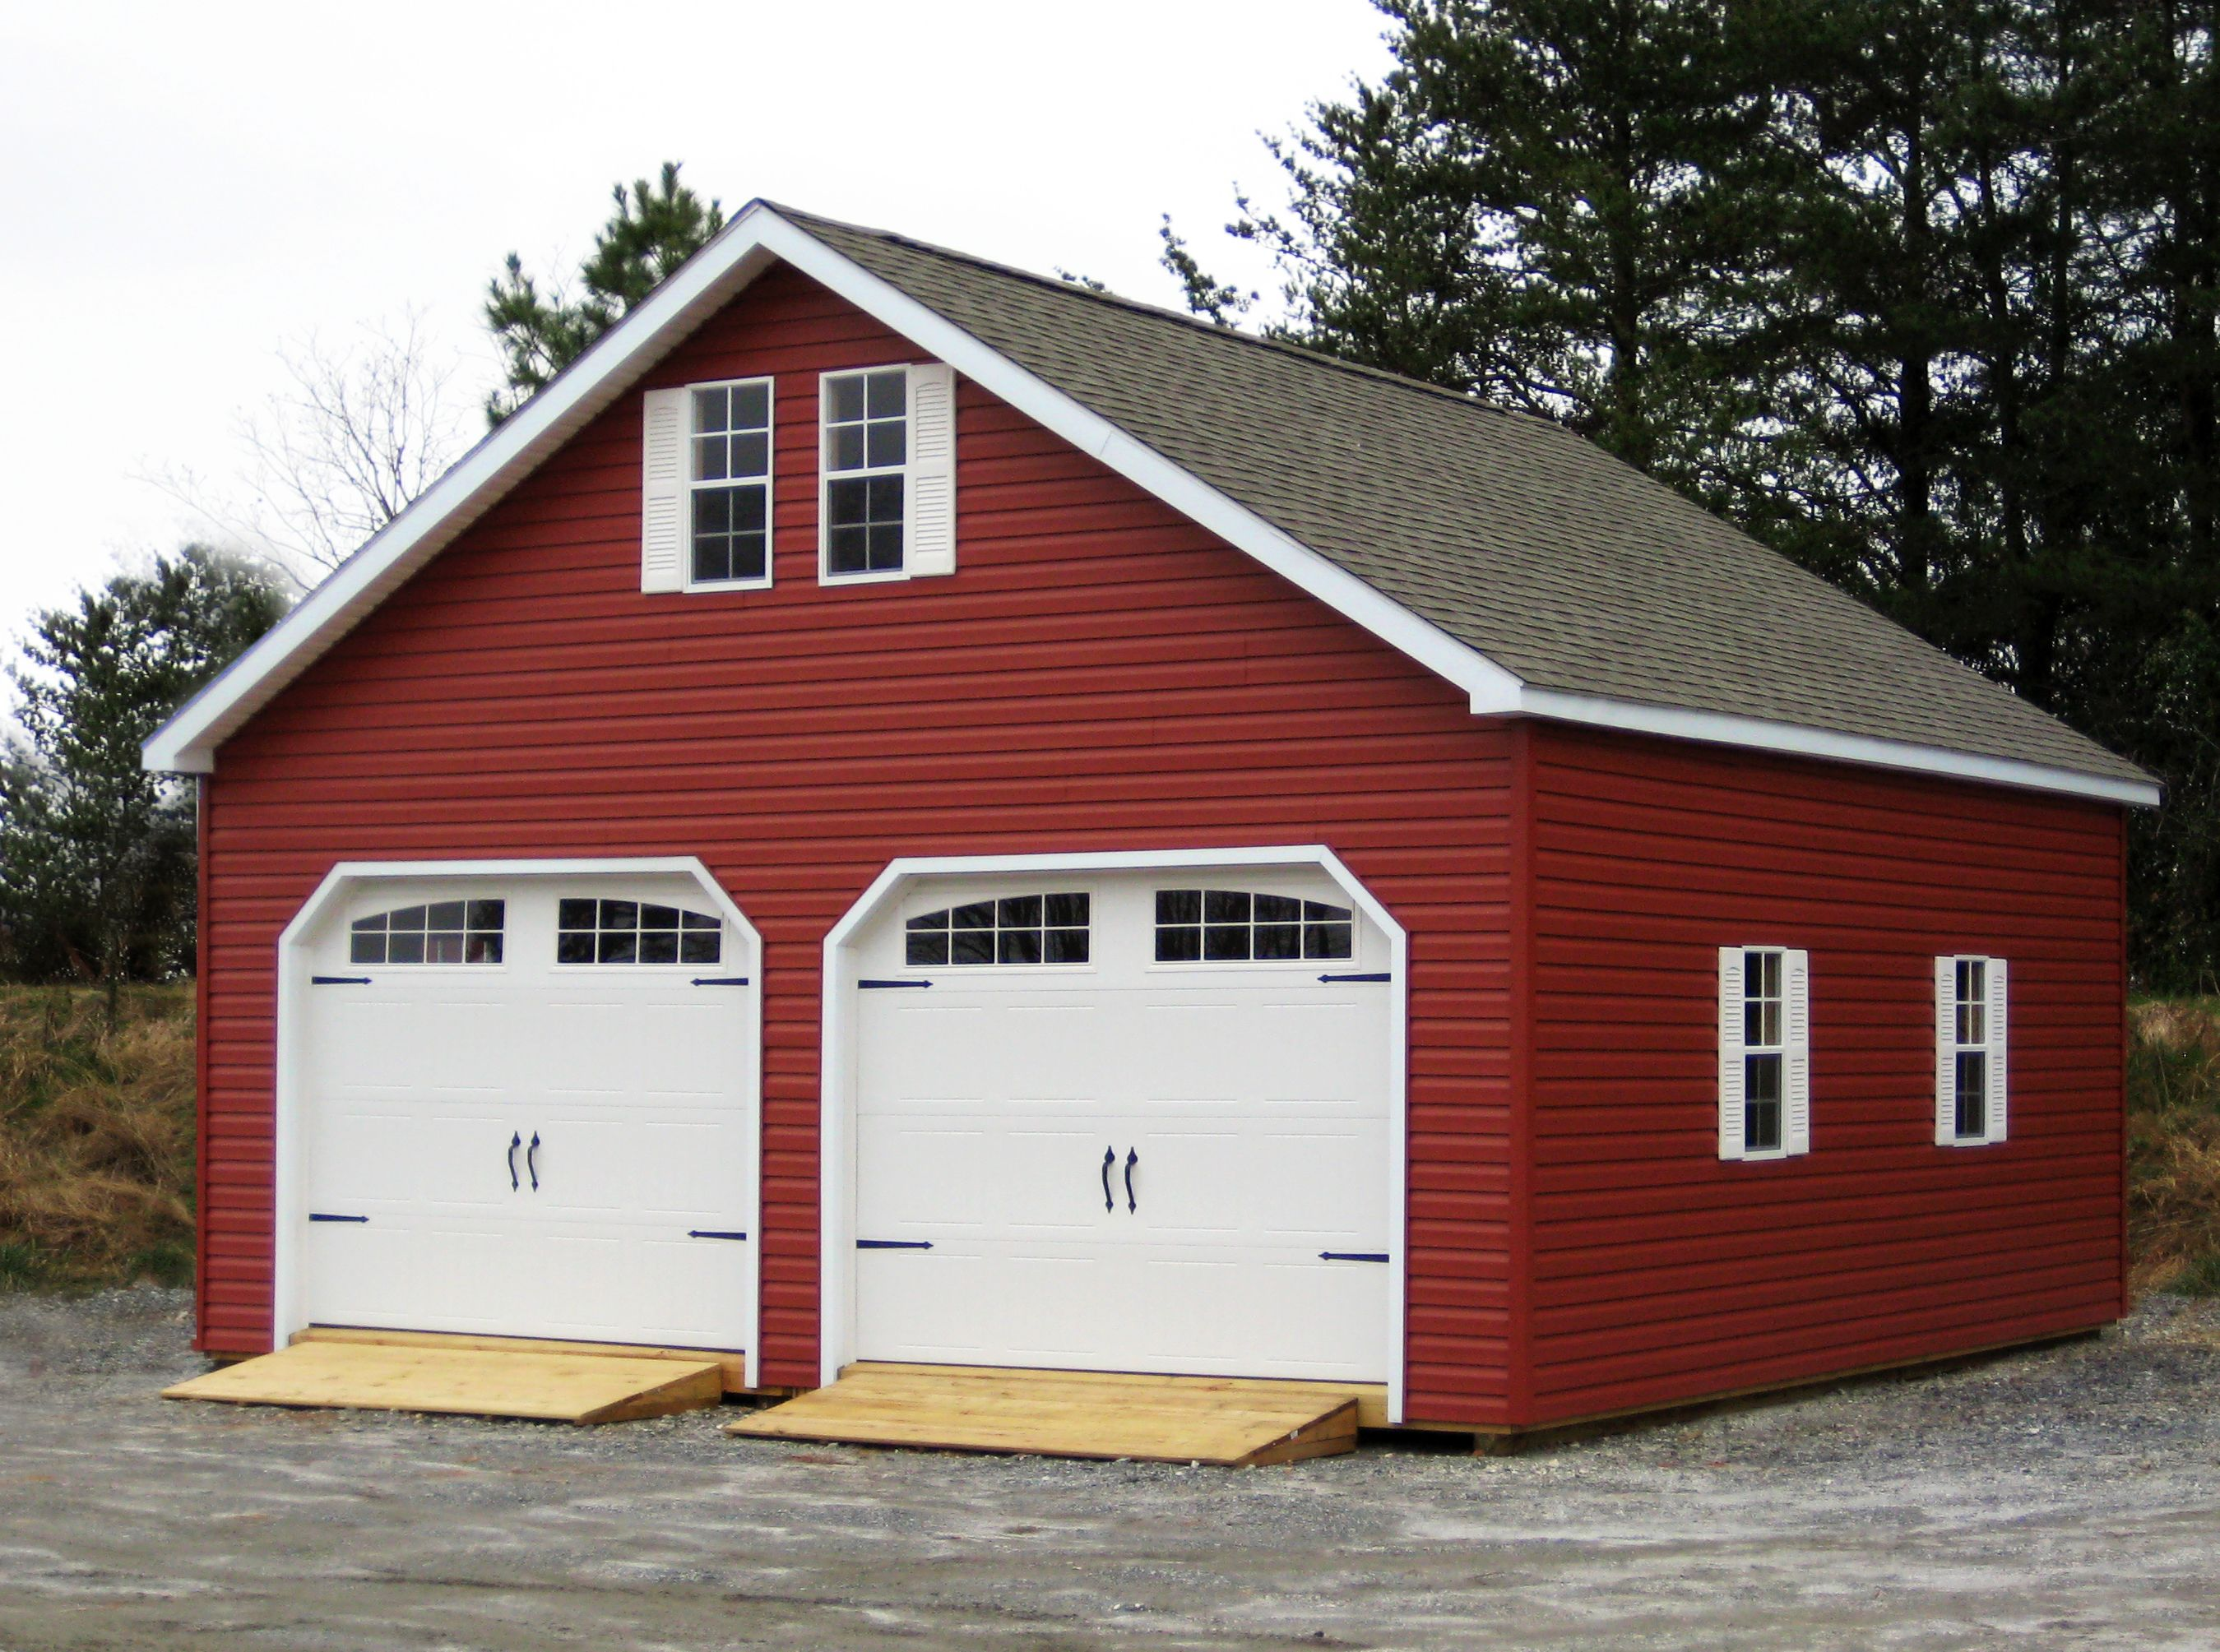 Black Barn Garage : Classy garage with red vinyl siding garages woodtex